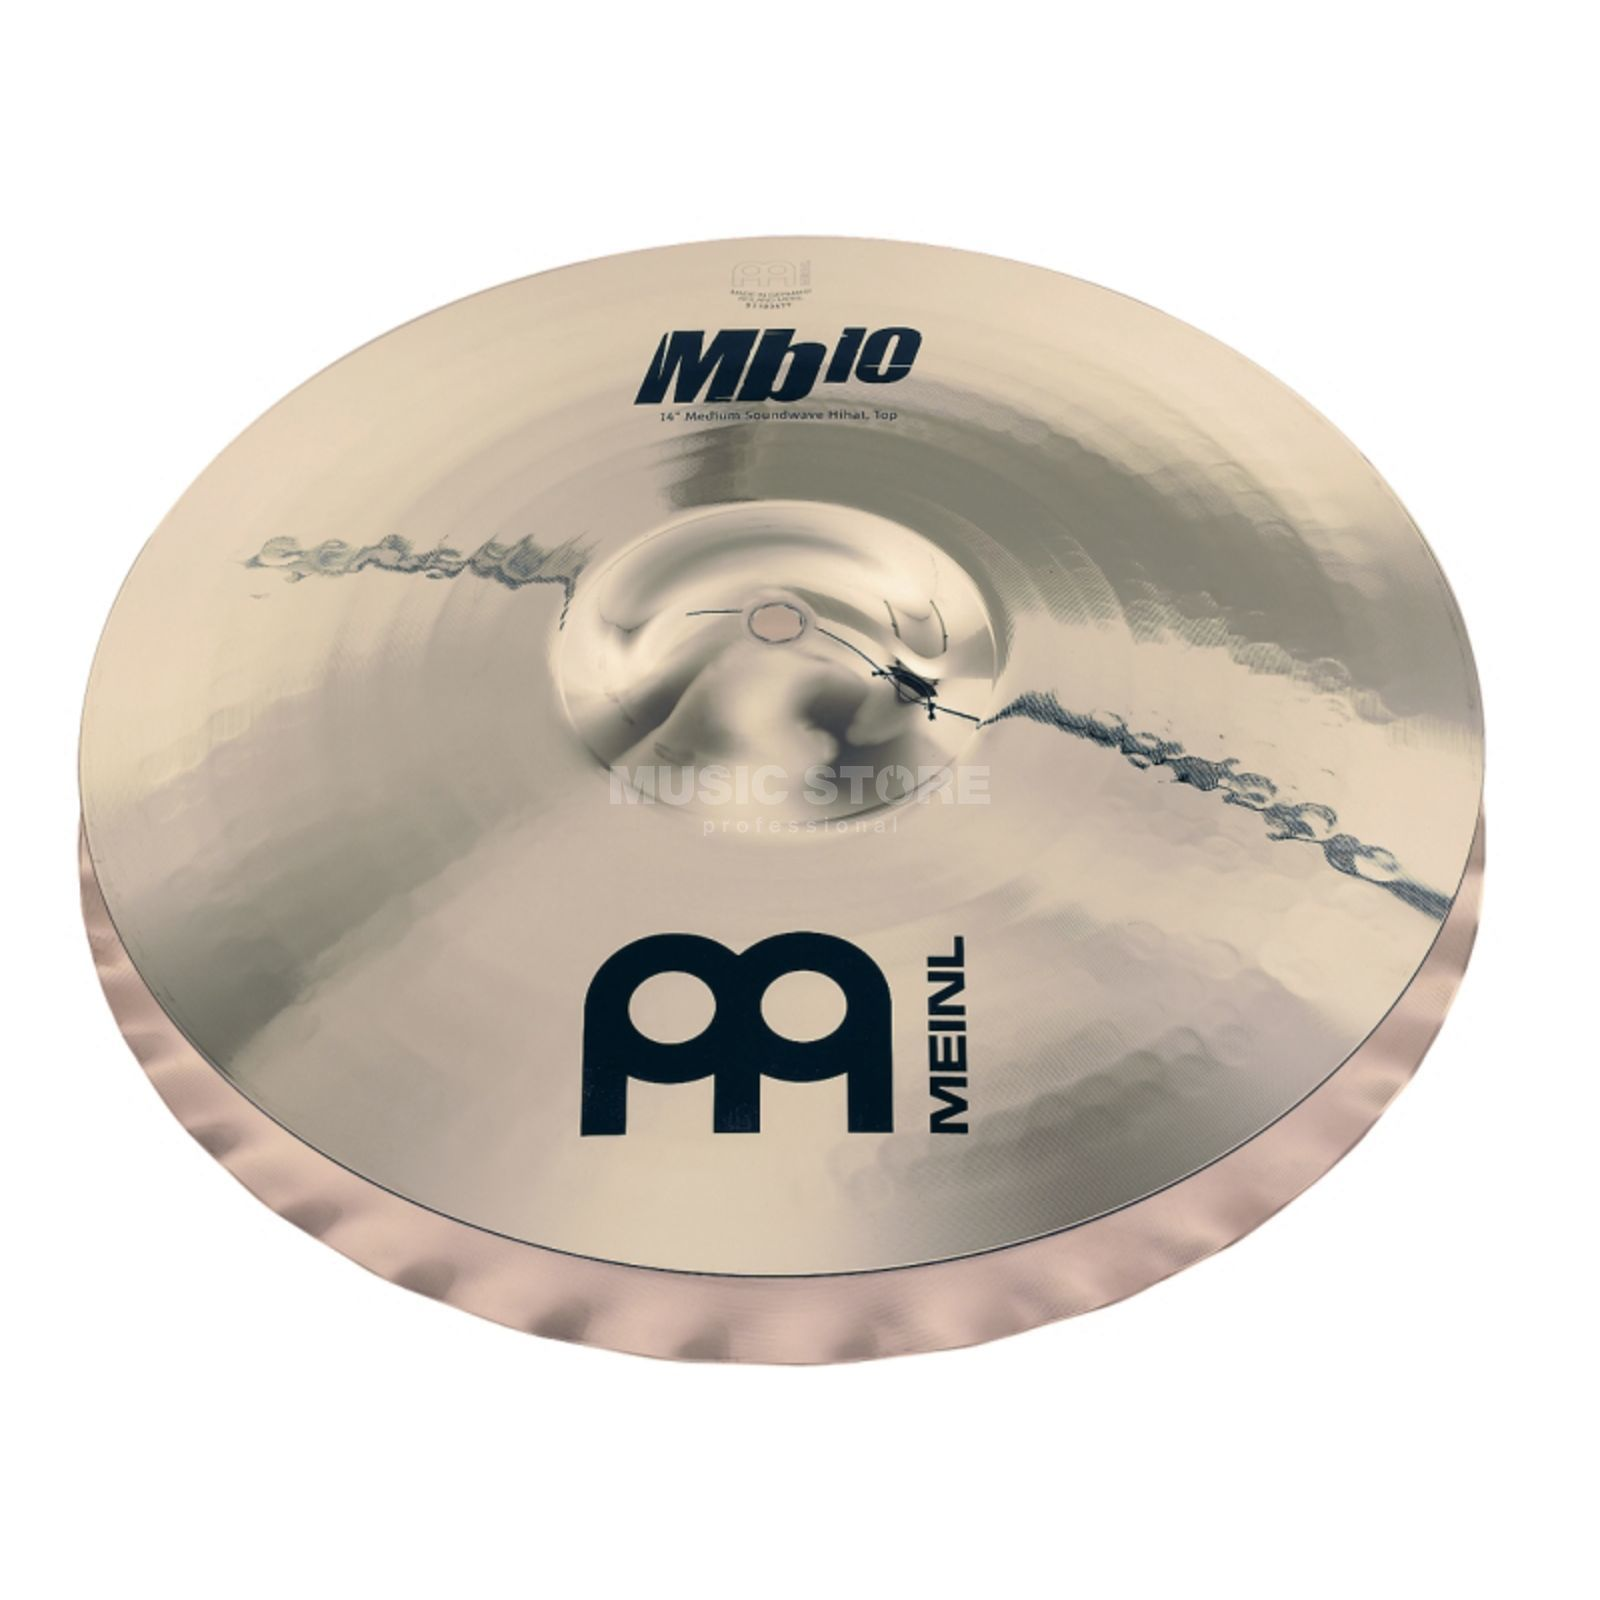 "Meinl MB10 Heavy Soundwave HiHat 14"" MB10-14HSW-B, Brilliant Finish Produktbild"